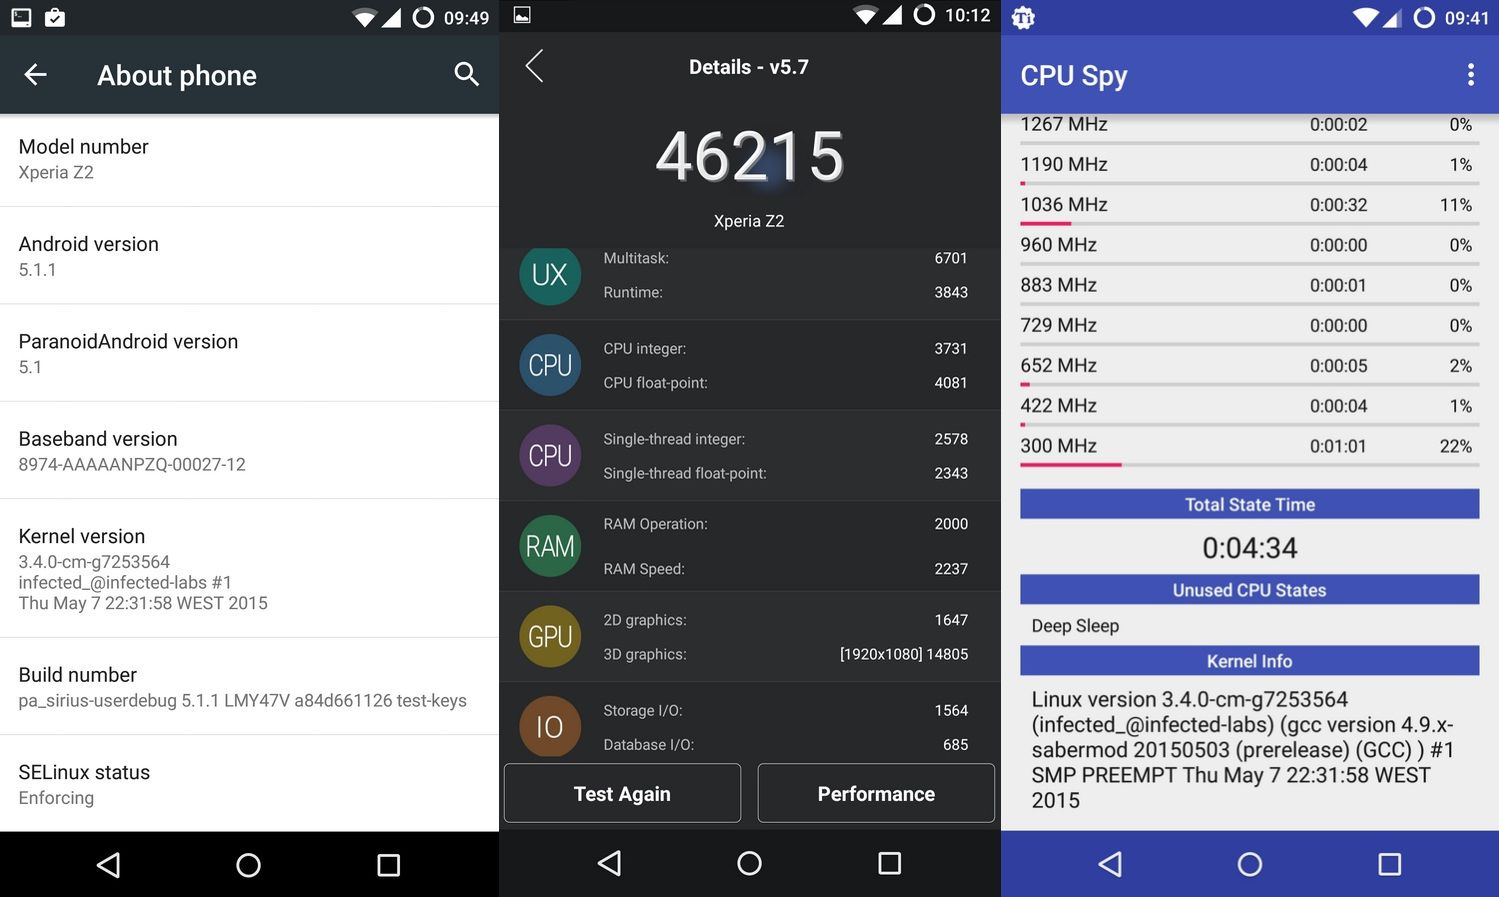 Android 5 1 1 lmy47v download - 200f8